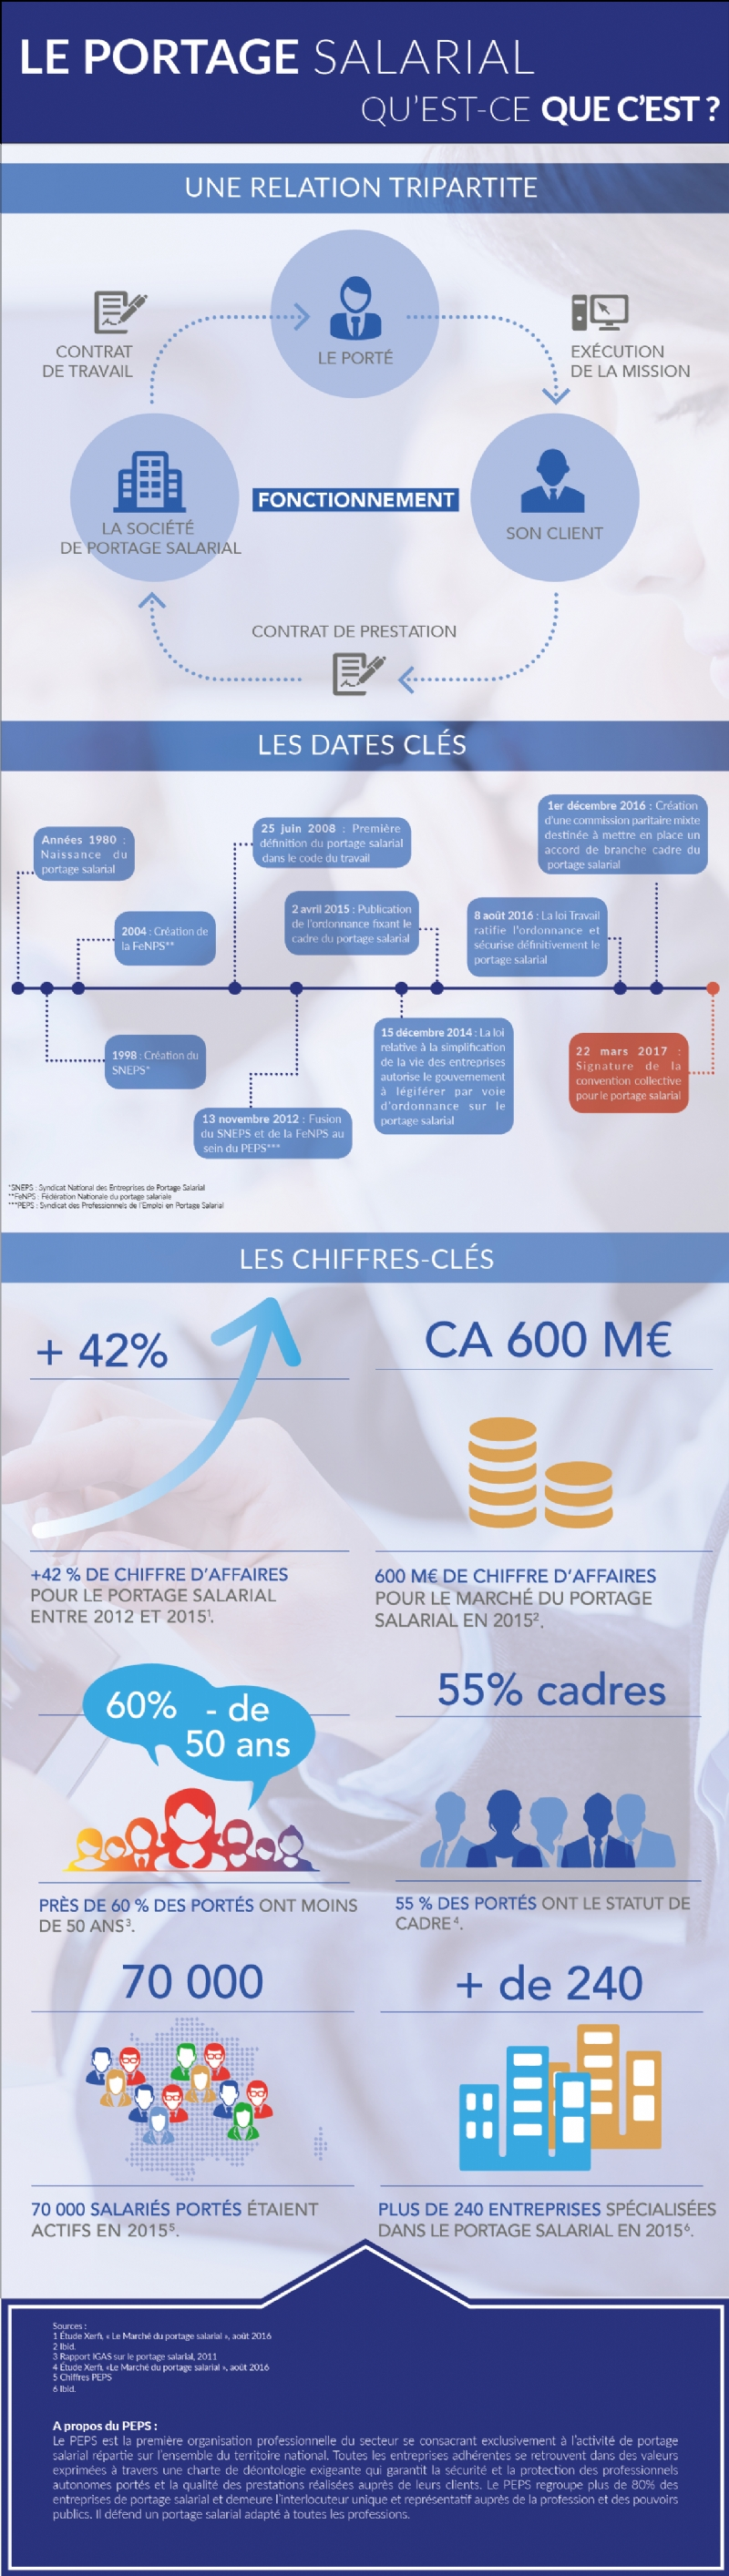 Infographie portage salarial PEPS